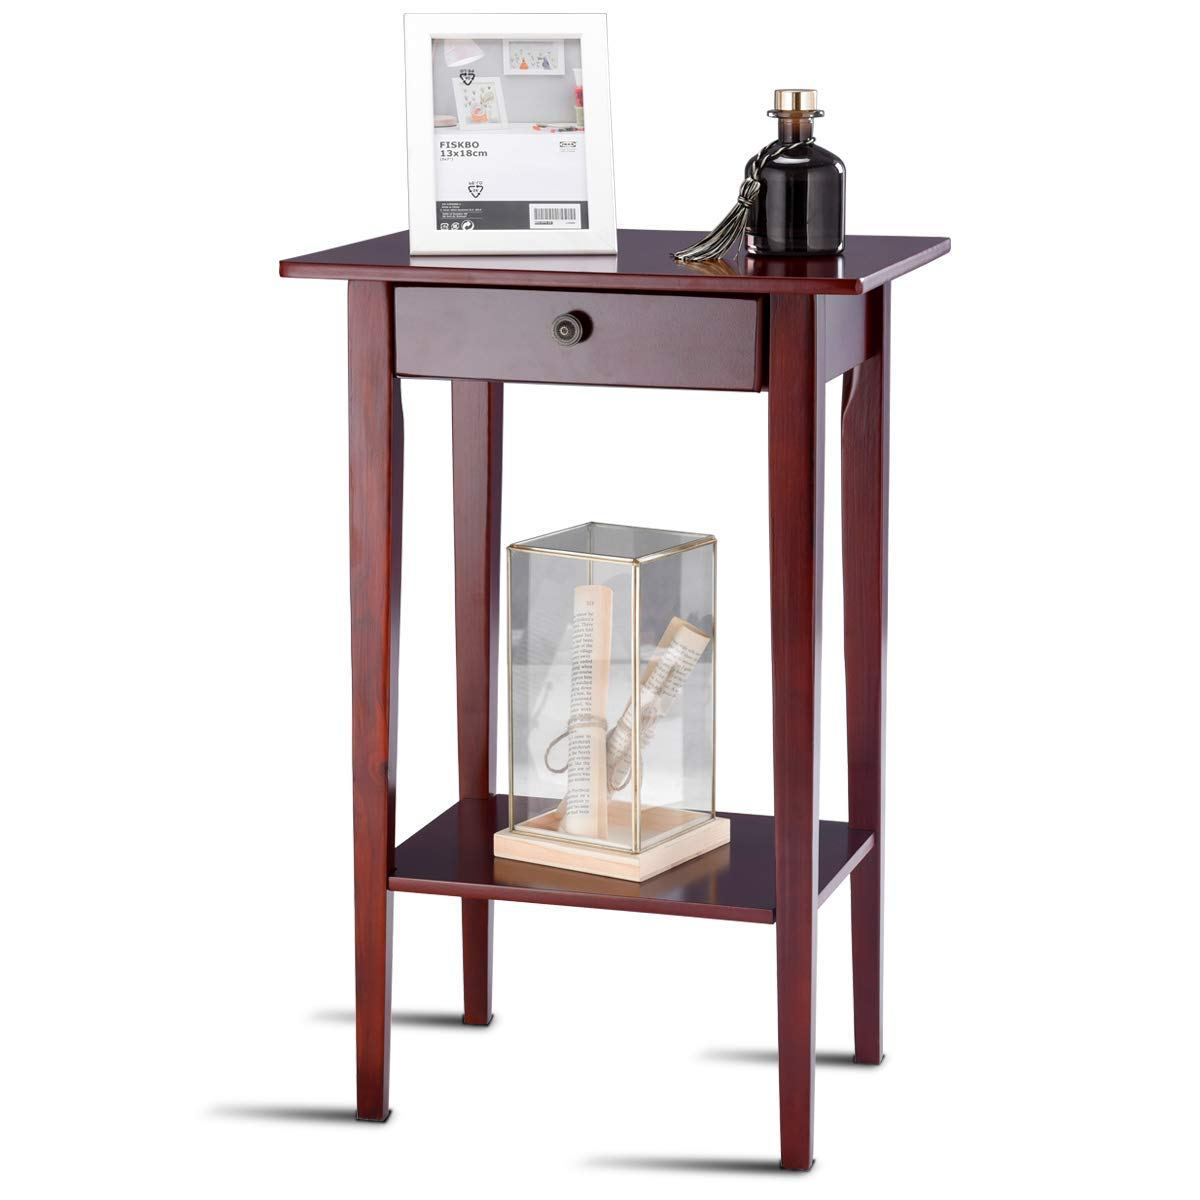 tangkula end table tall wood side accent style telephone stand home office furniture drawer shelf kitchen dining large marble coffee making barn door goods rugs small with